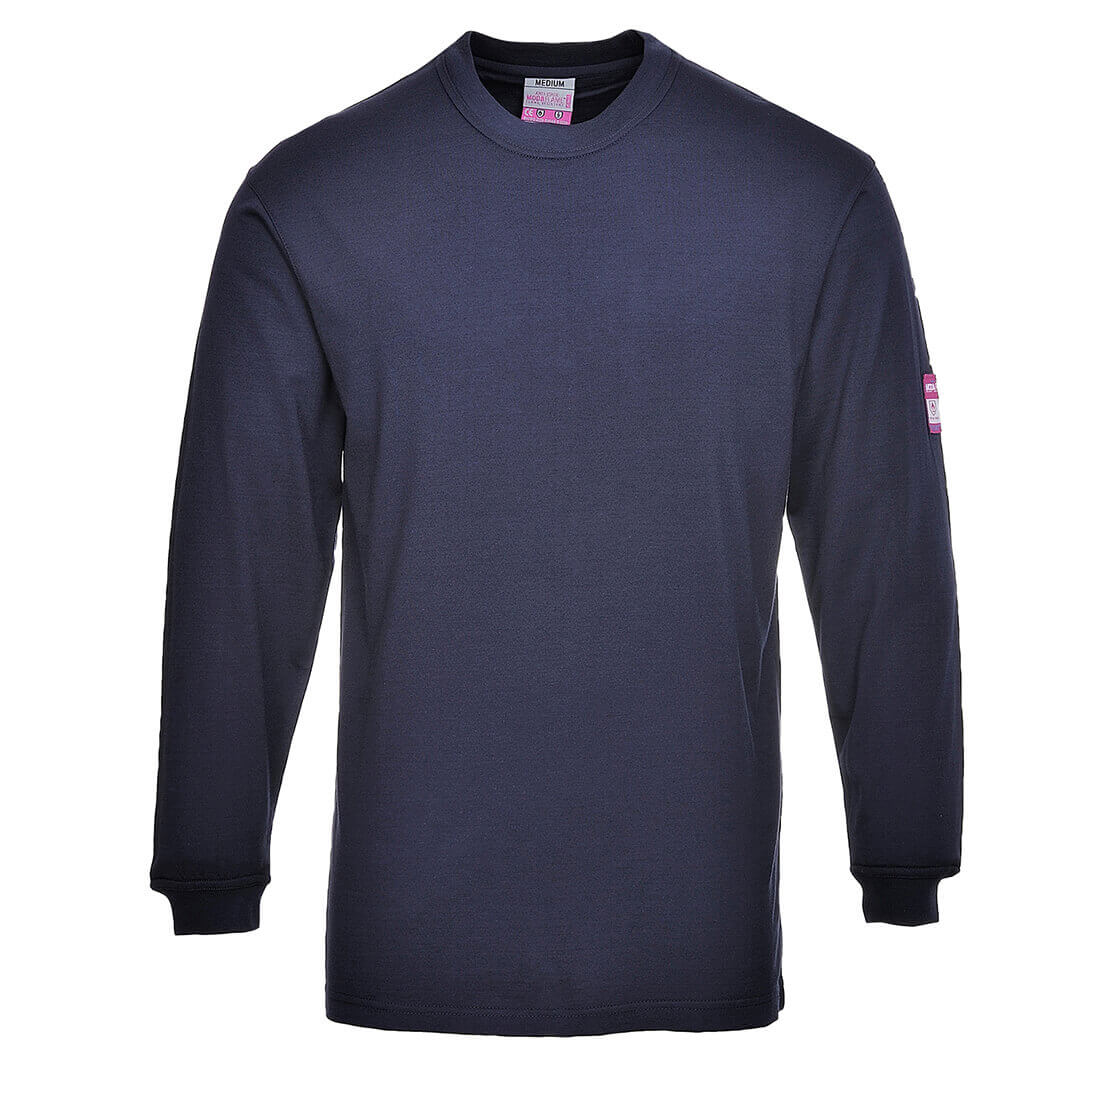 Image of Modaflame Mens Flame Resistant Antistatic T-Shirt Navy 3XL